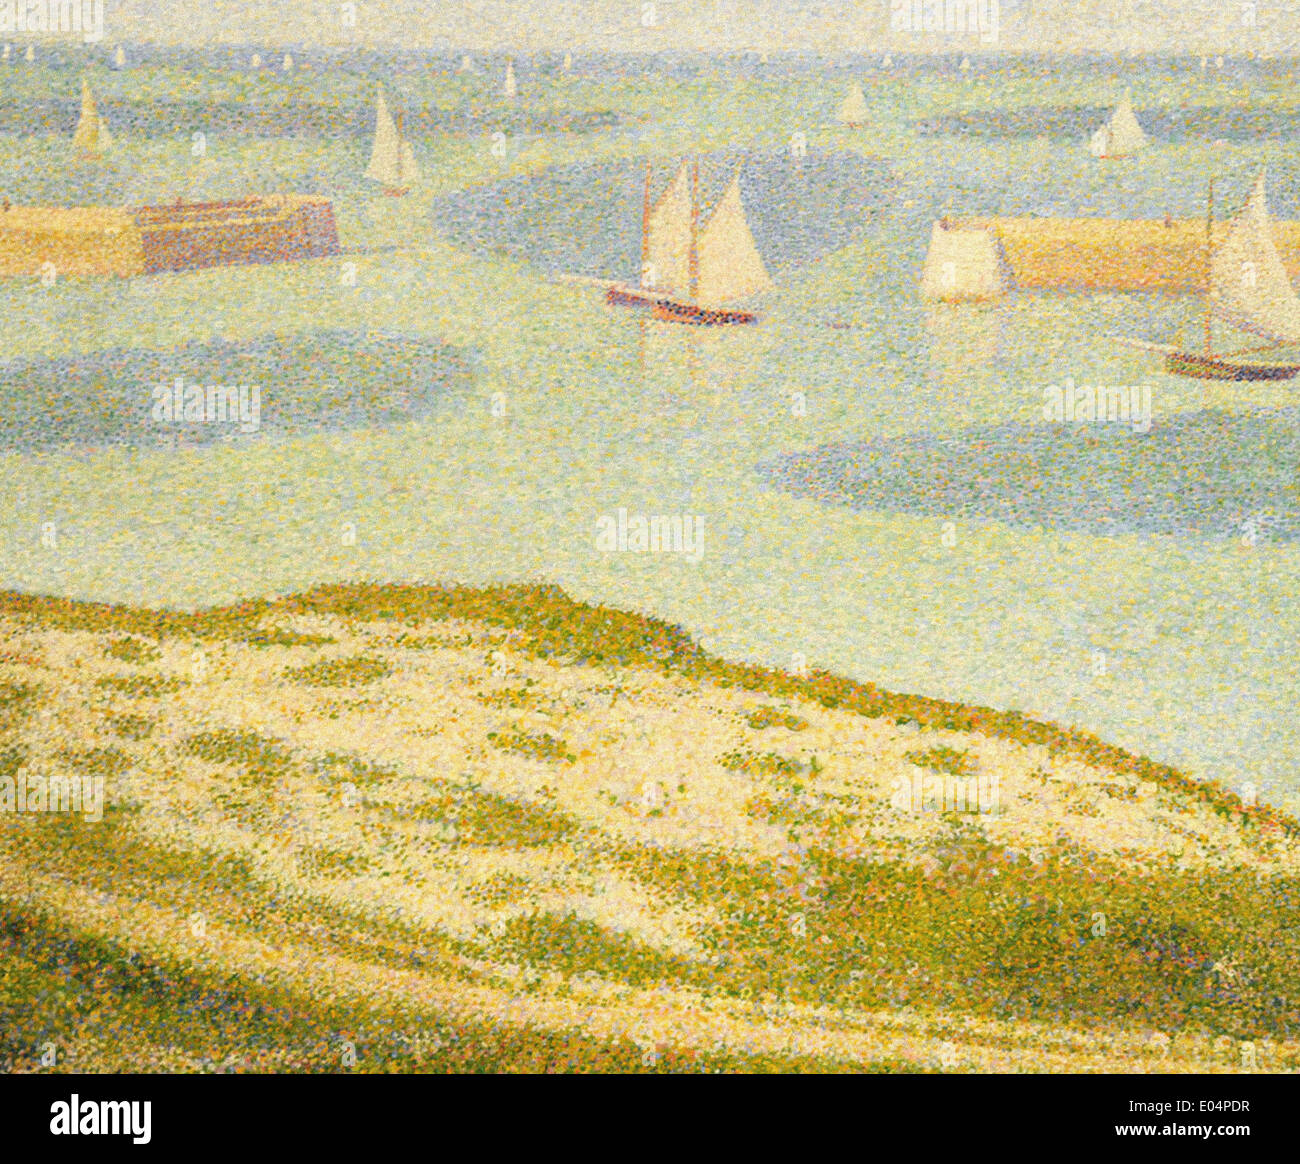 Georges Seurat Port-en-Bessin, Entrance to the Harbor - Stock Image